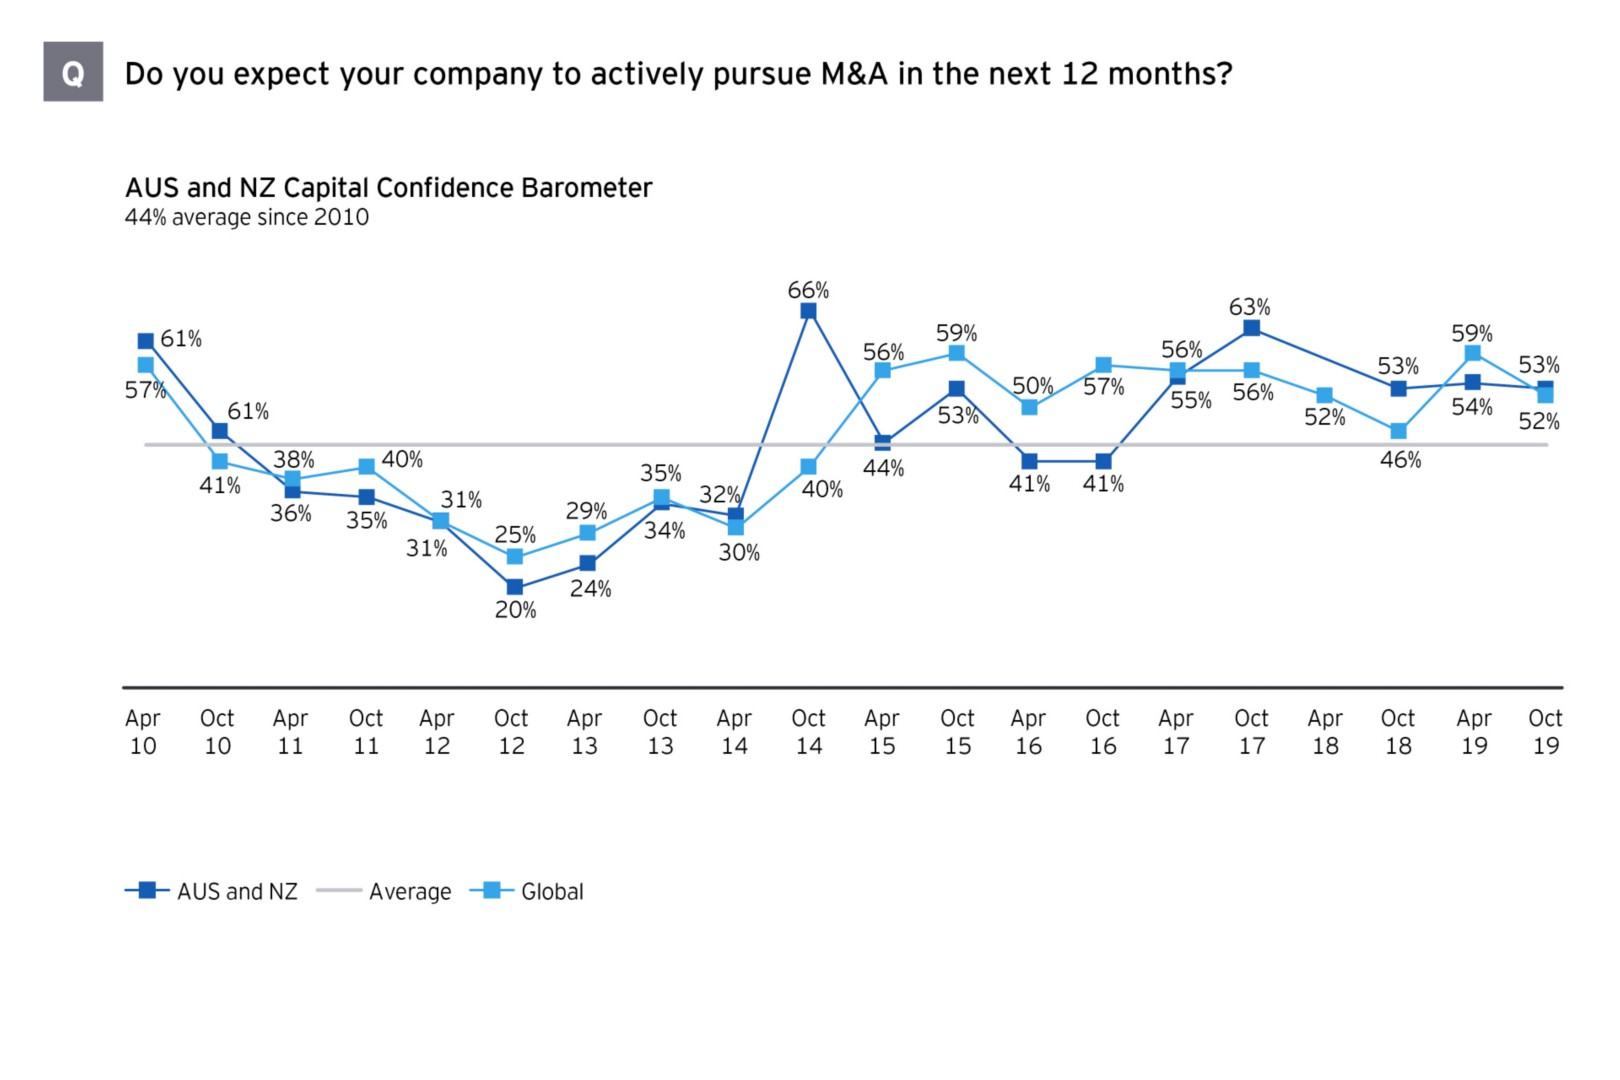 M&A survey Australasia M&A expectations graph